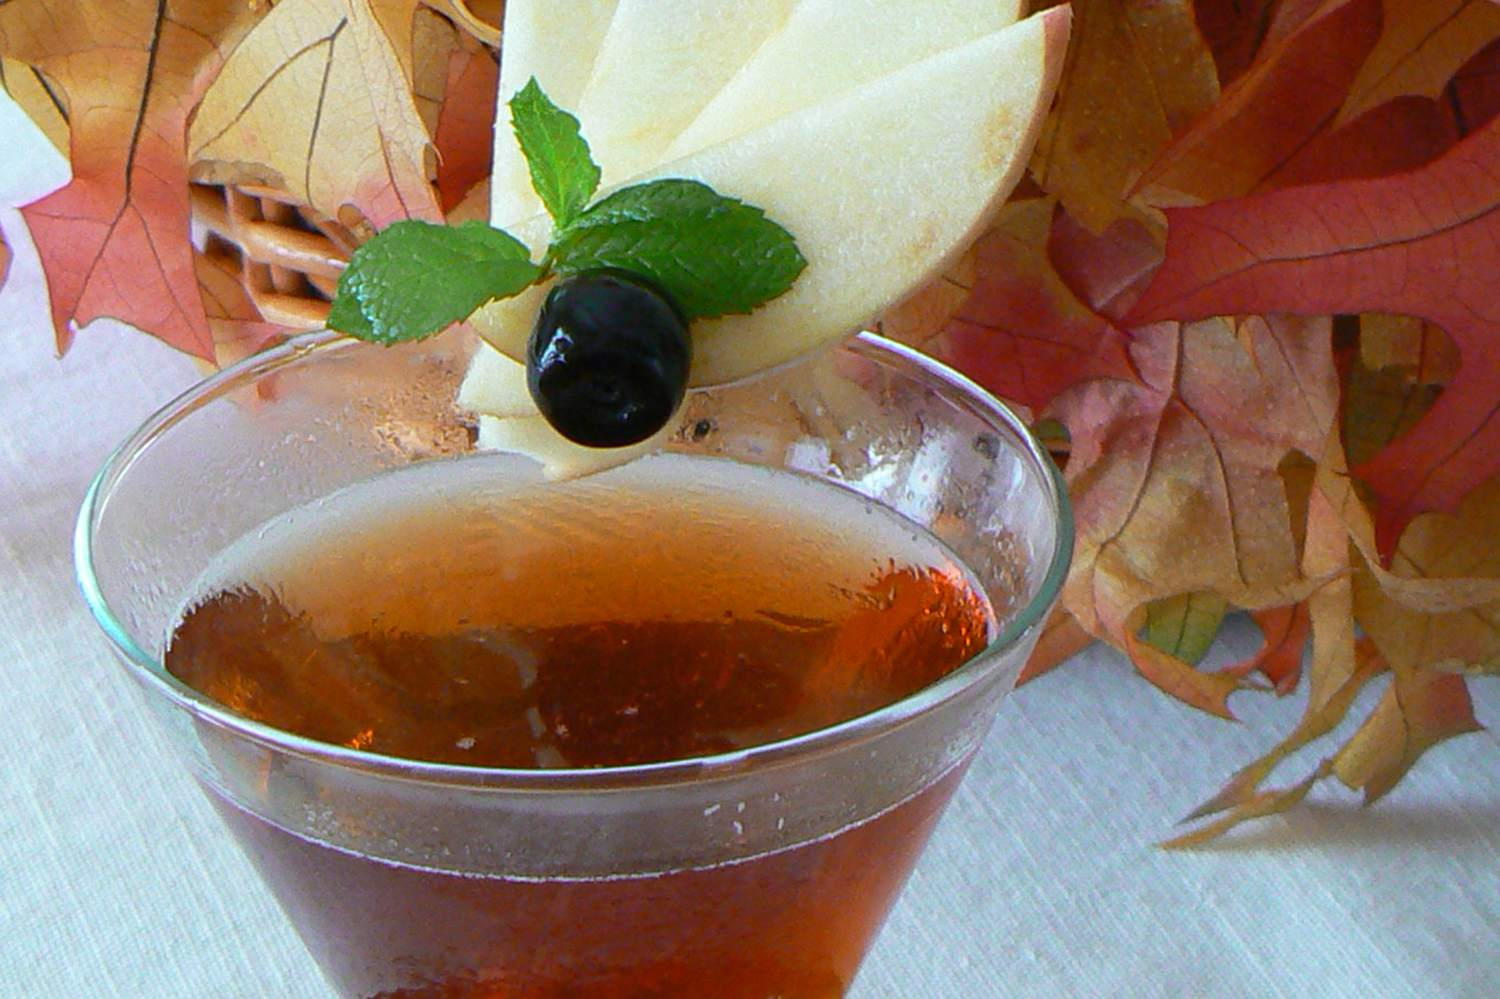 Robert Watrous' The Rustic Manhattan Cocktail